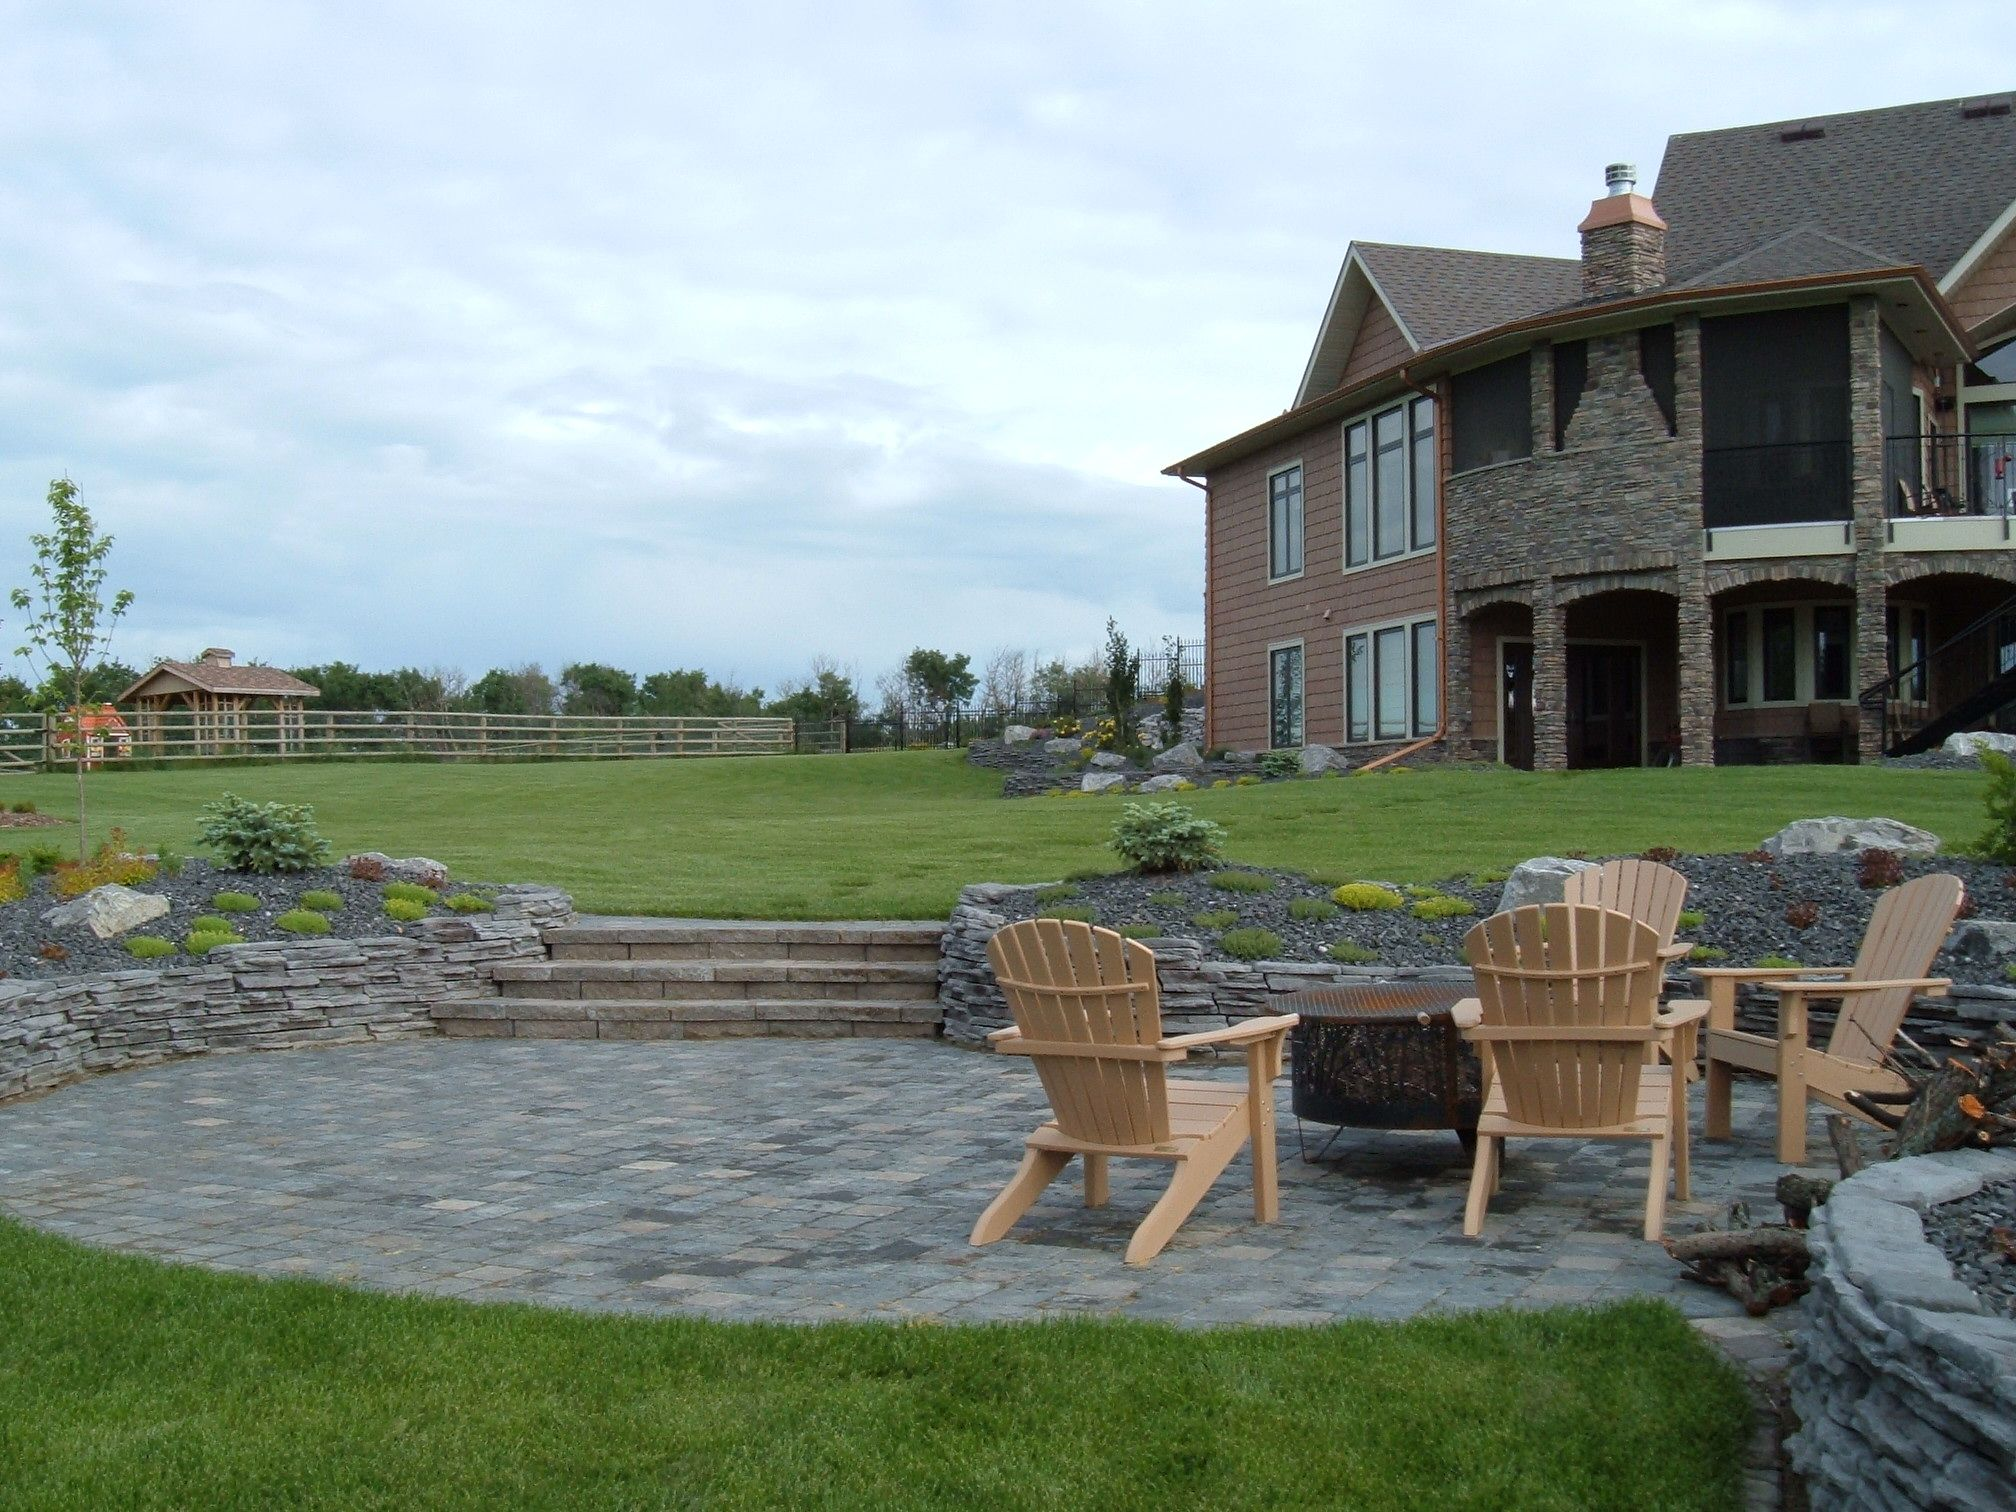 Patio And Rock Walls   Lakeside Cottages And Country Homes By Creative  Landscape U0026 Design | Lakeside Cottages And Country Homes | Pinterest |  Lakeside ...